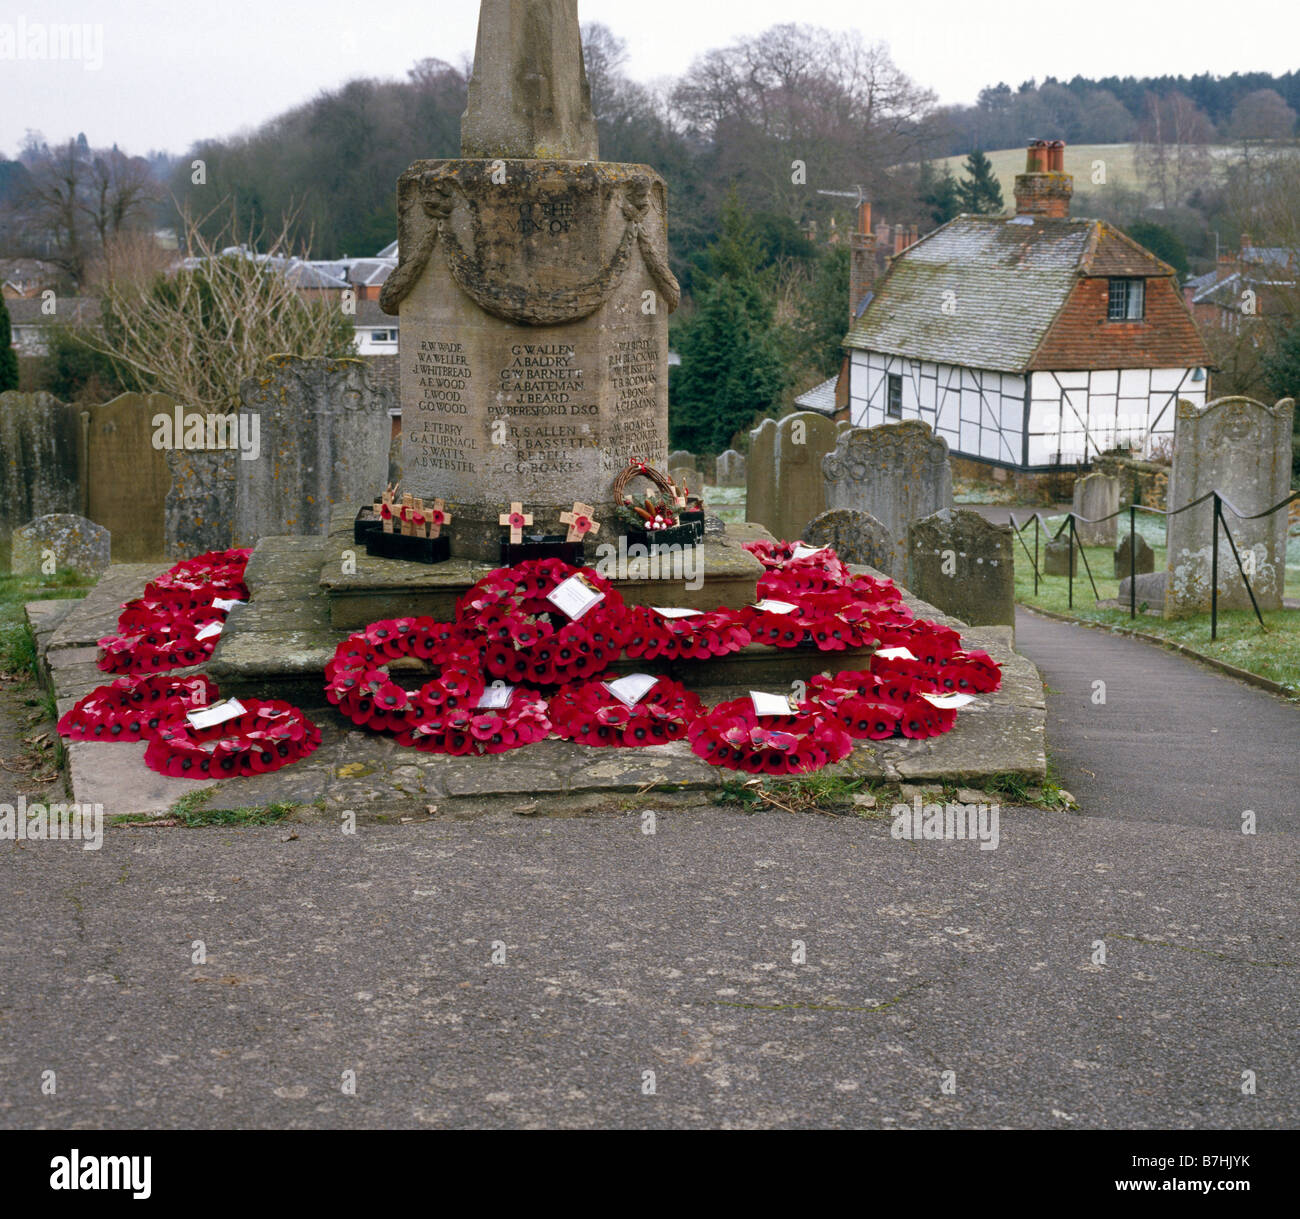 St Marys Church war memorial with Remembrance Day poppies. Westerham, Kent, England, UK. - Stock Image